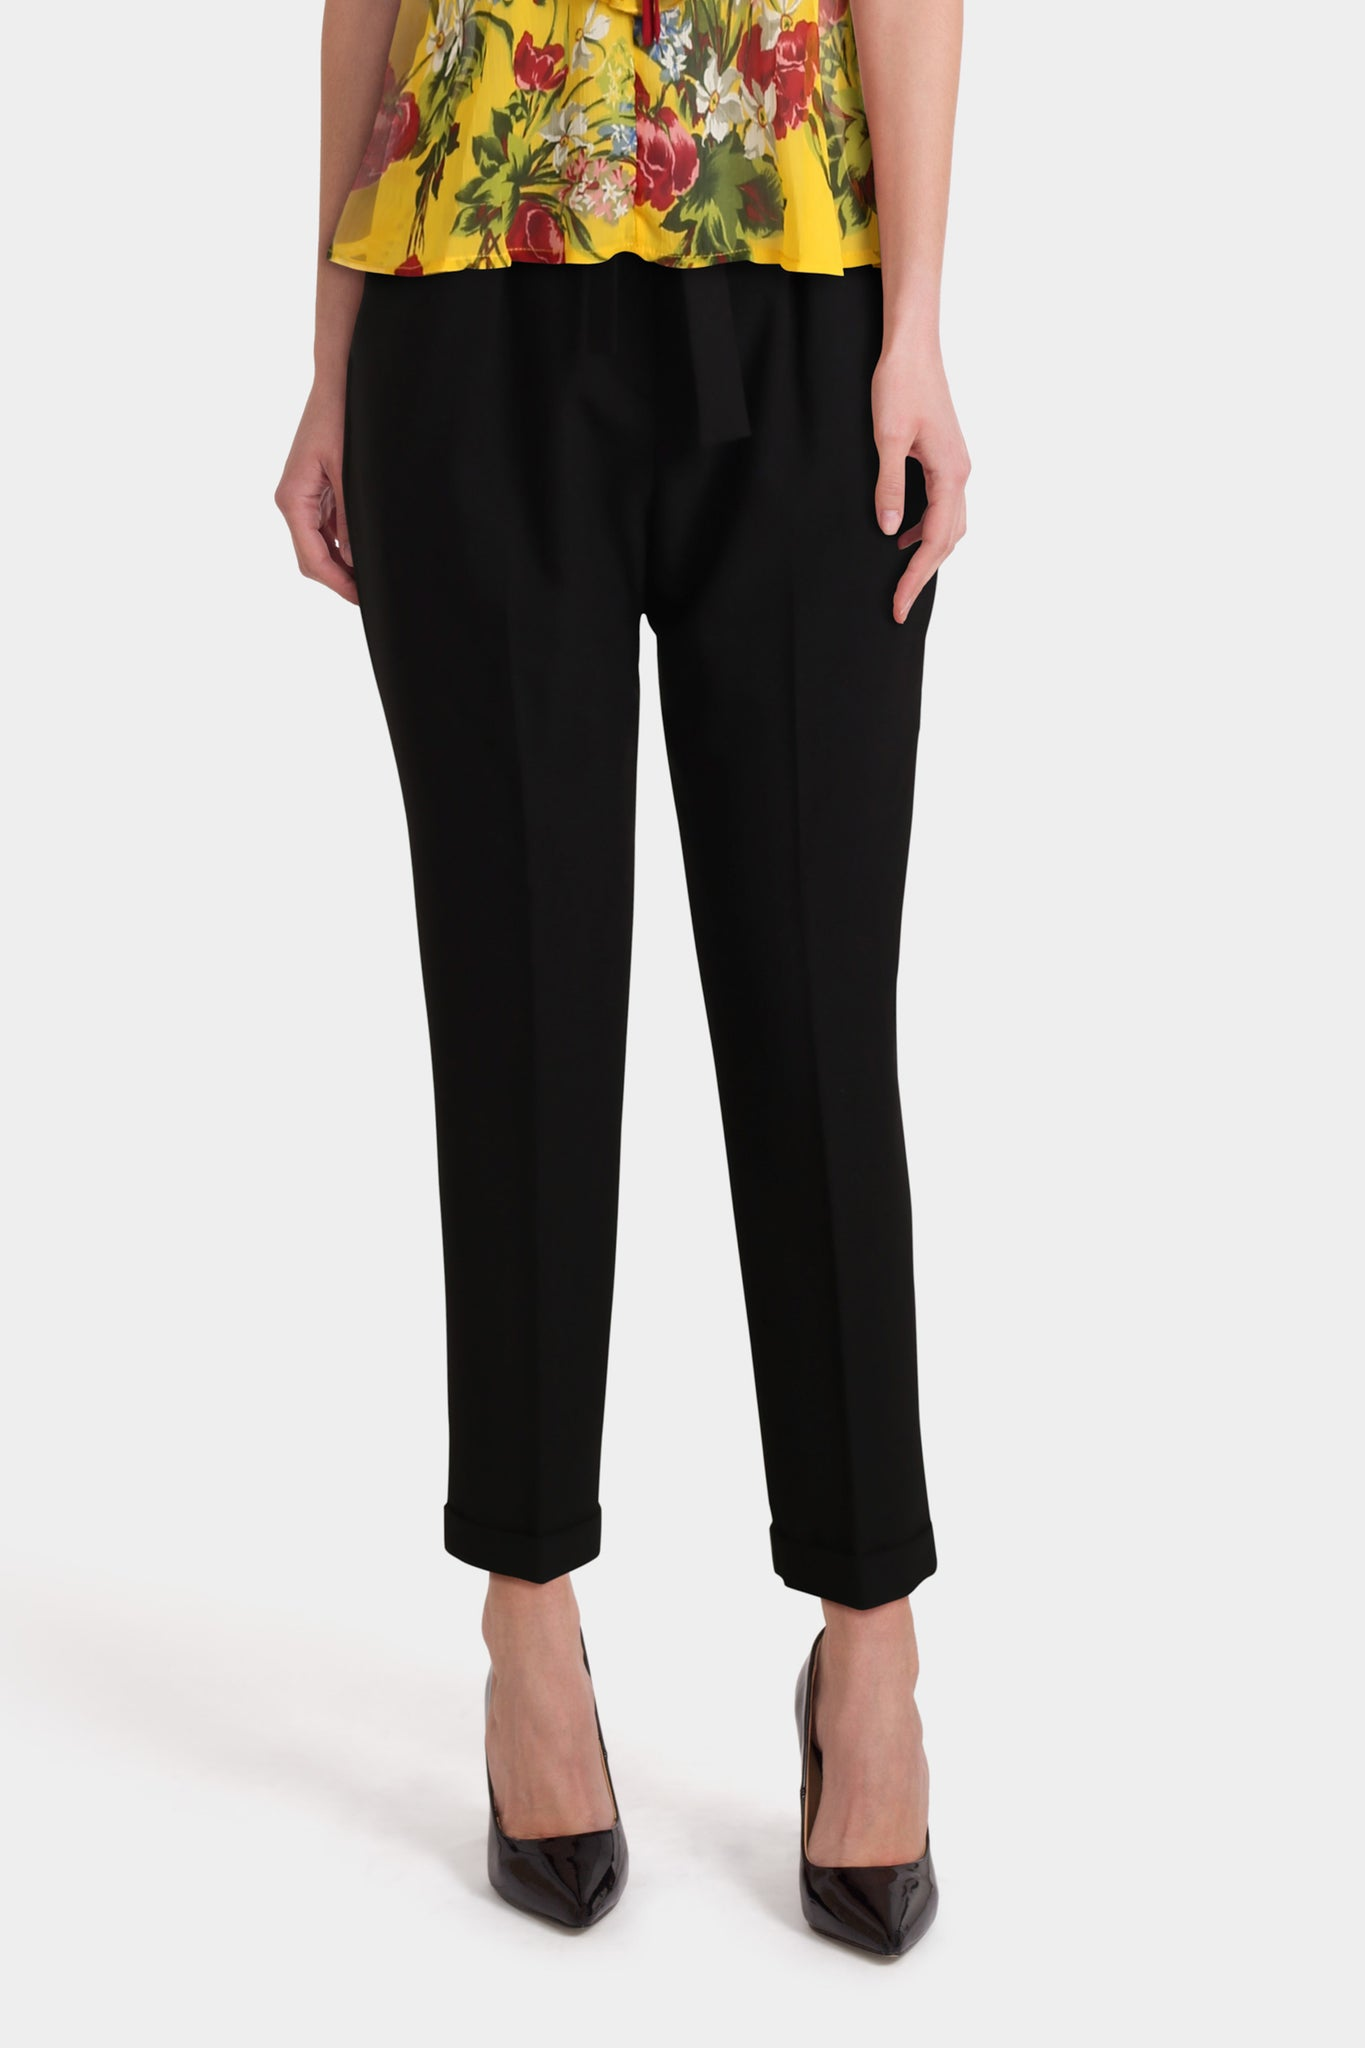 e10fcda09de1 ASOS Woven Peg Trousers with Obi Tie – TRY METAIL